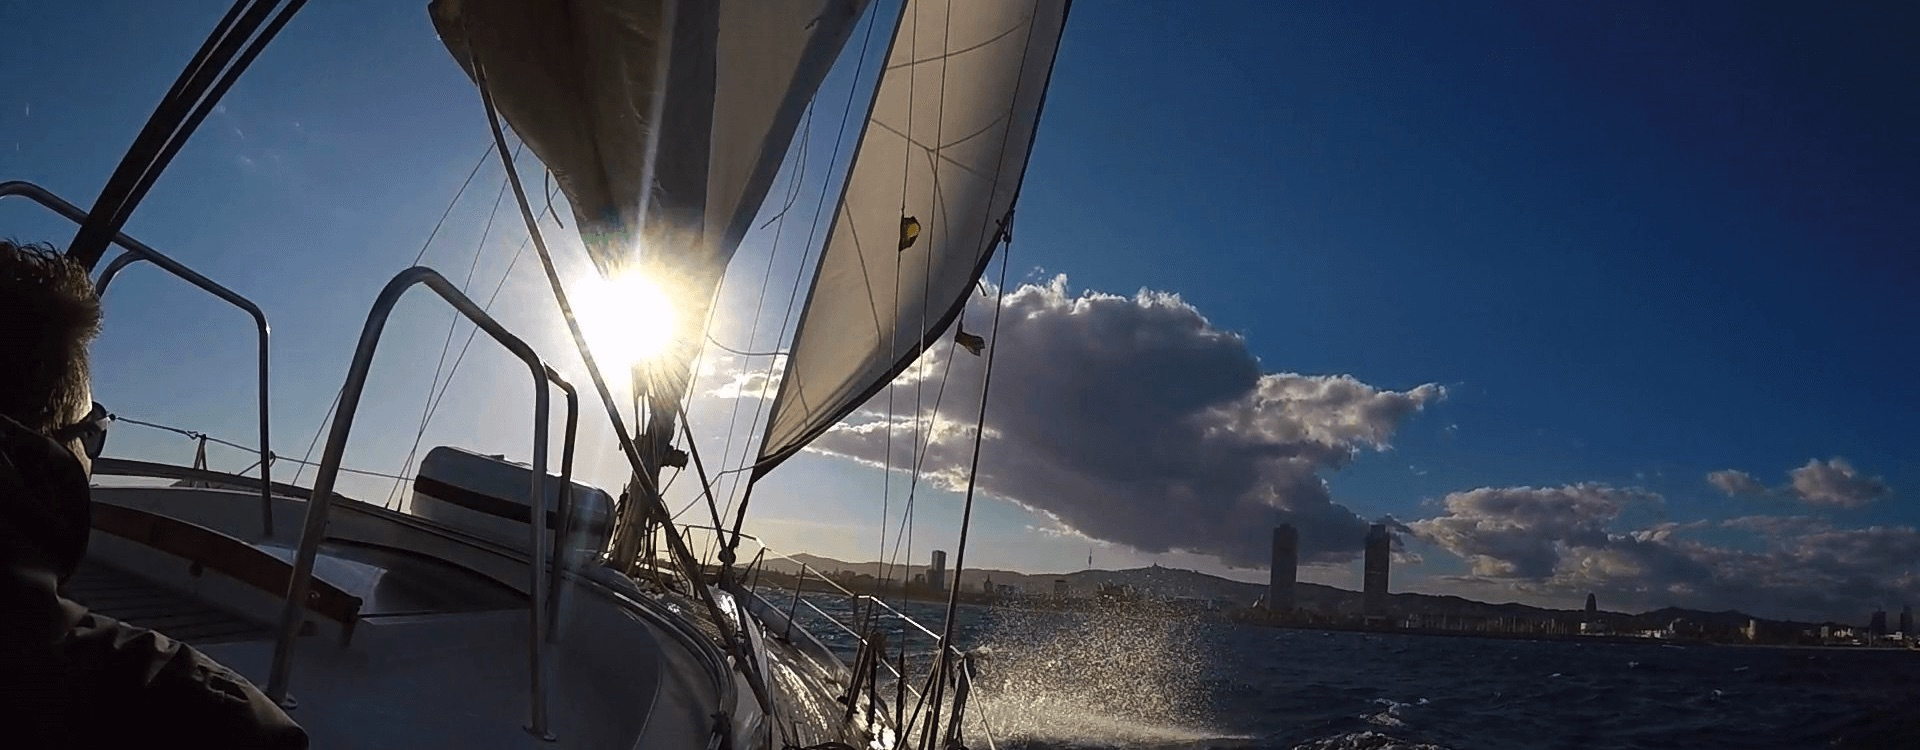 Private Sailing Trips & Sunset Boat Tours in Barcelona